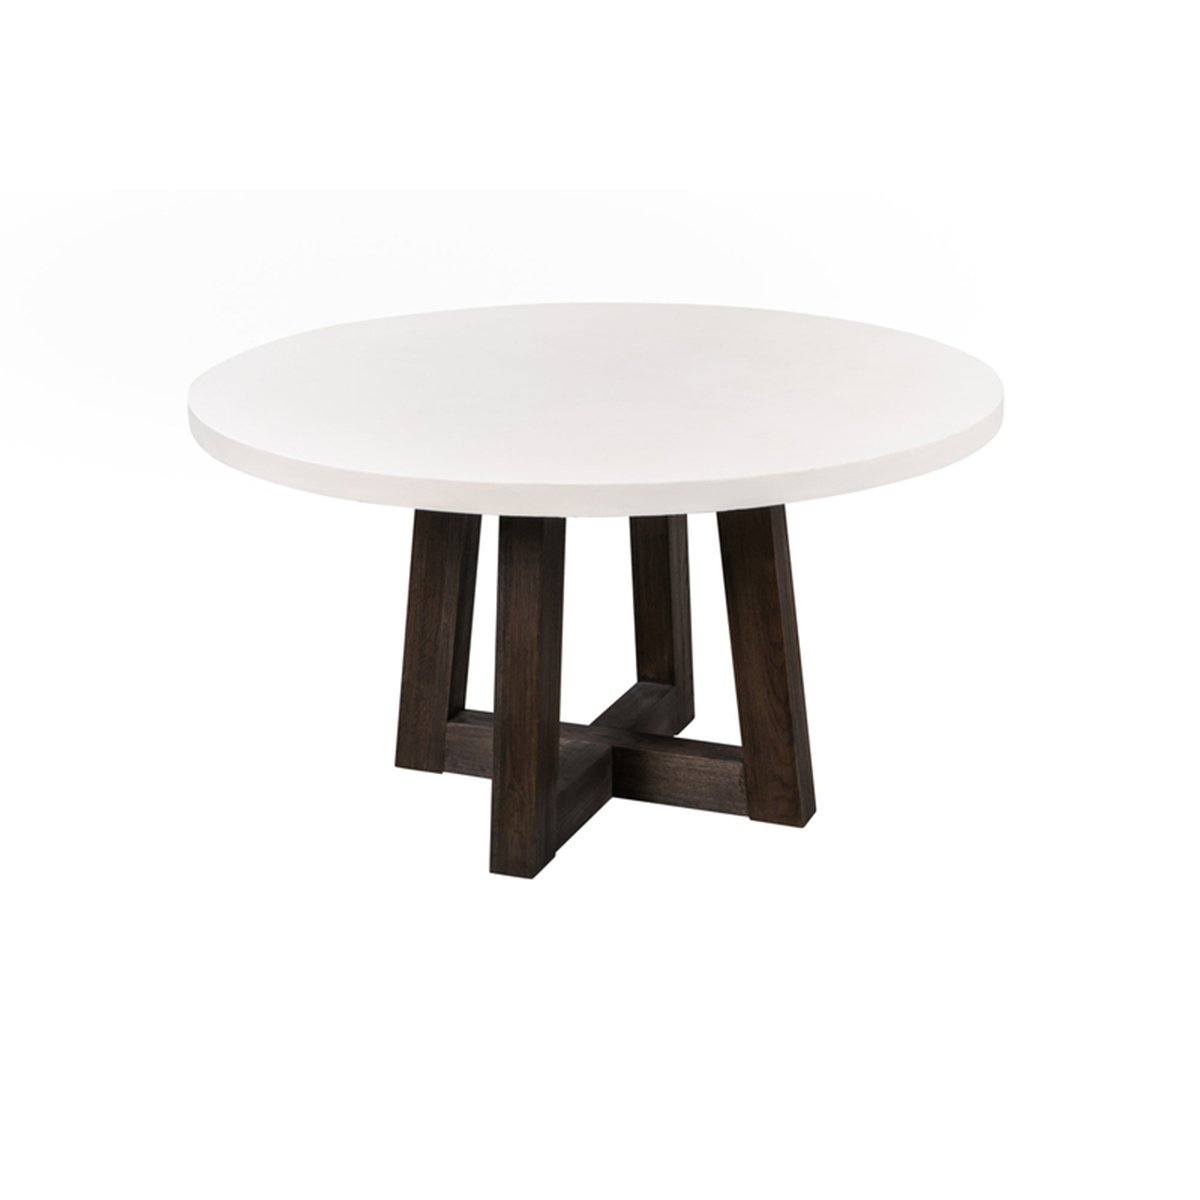 MANCHESTER ROUND DINING TABLE - Showhome Furniture